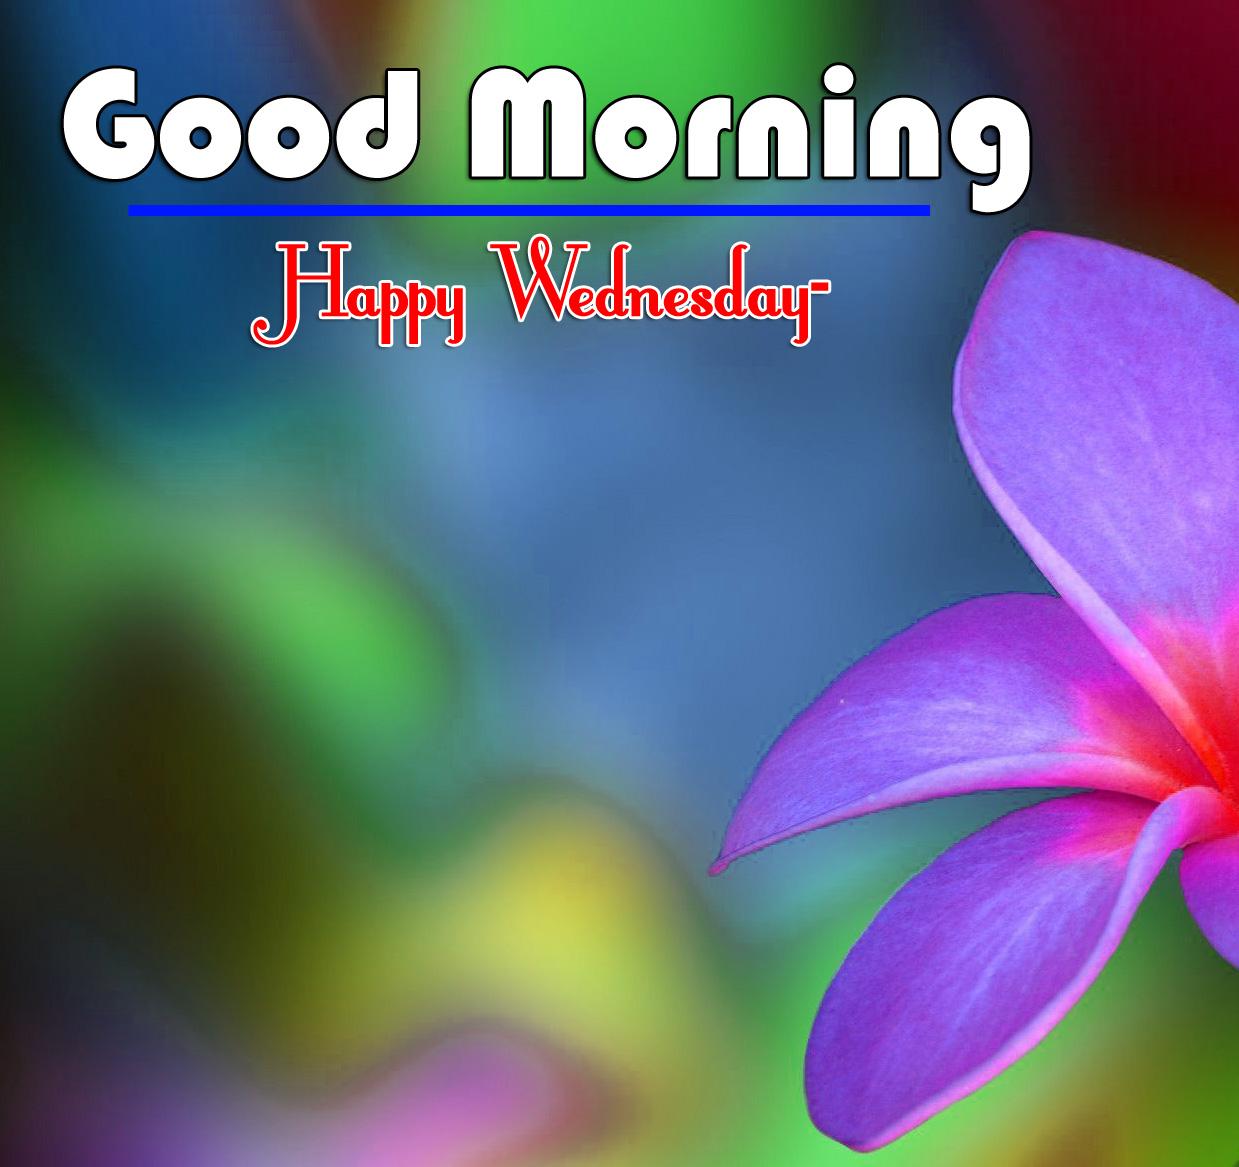 Good Morning Wednesday Images 2